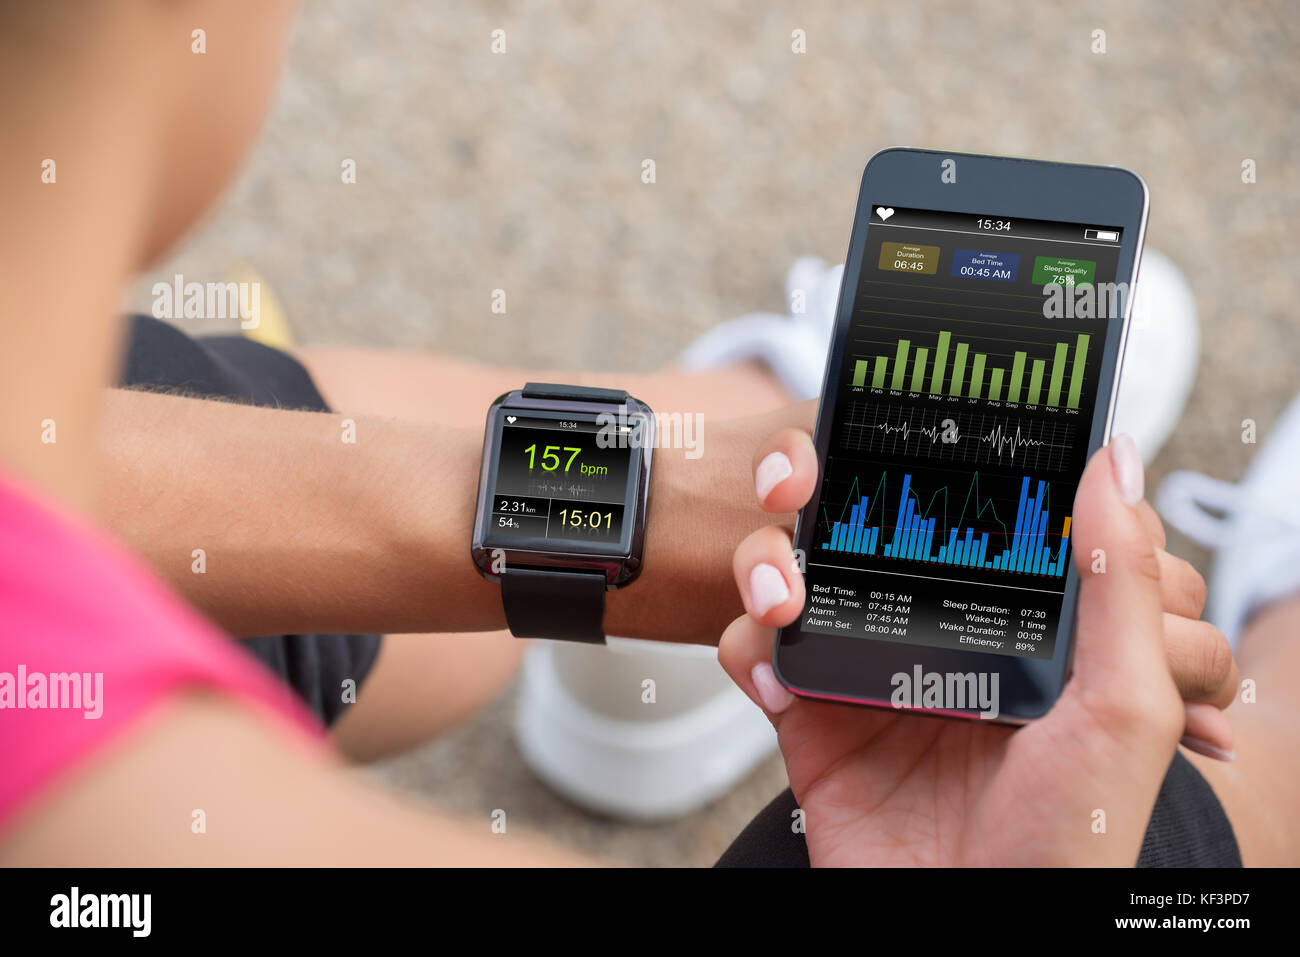 Female Runner Looking At Her Mobile And Smart Watch Heart Rate Monitor - Stock Image